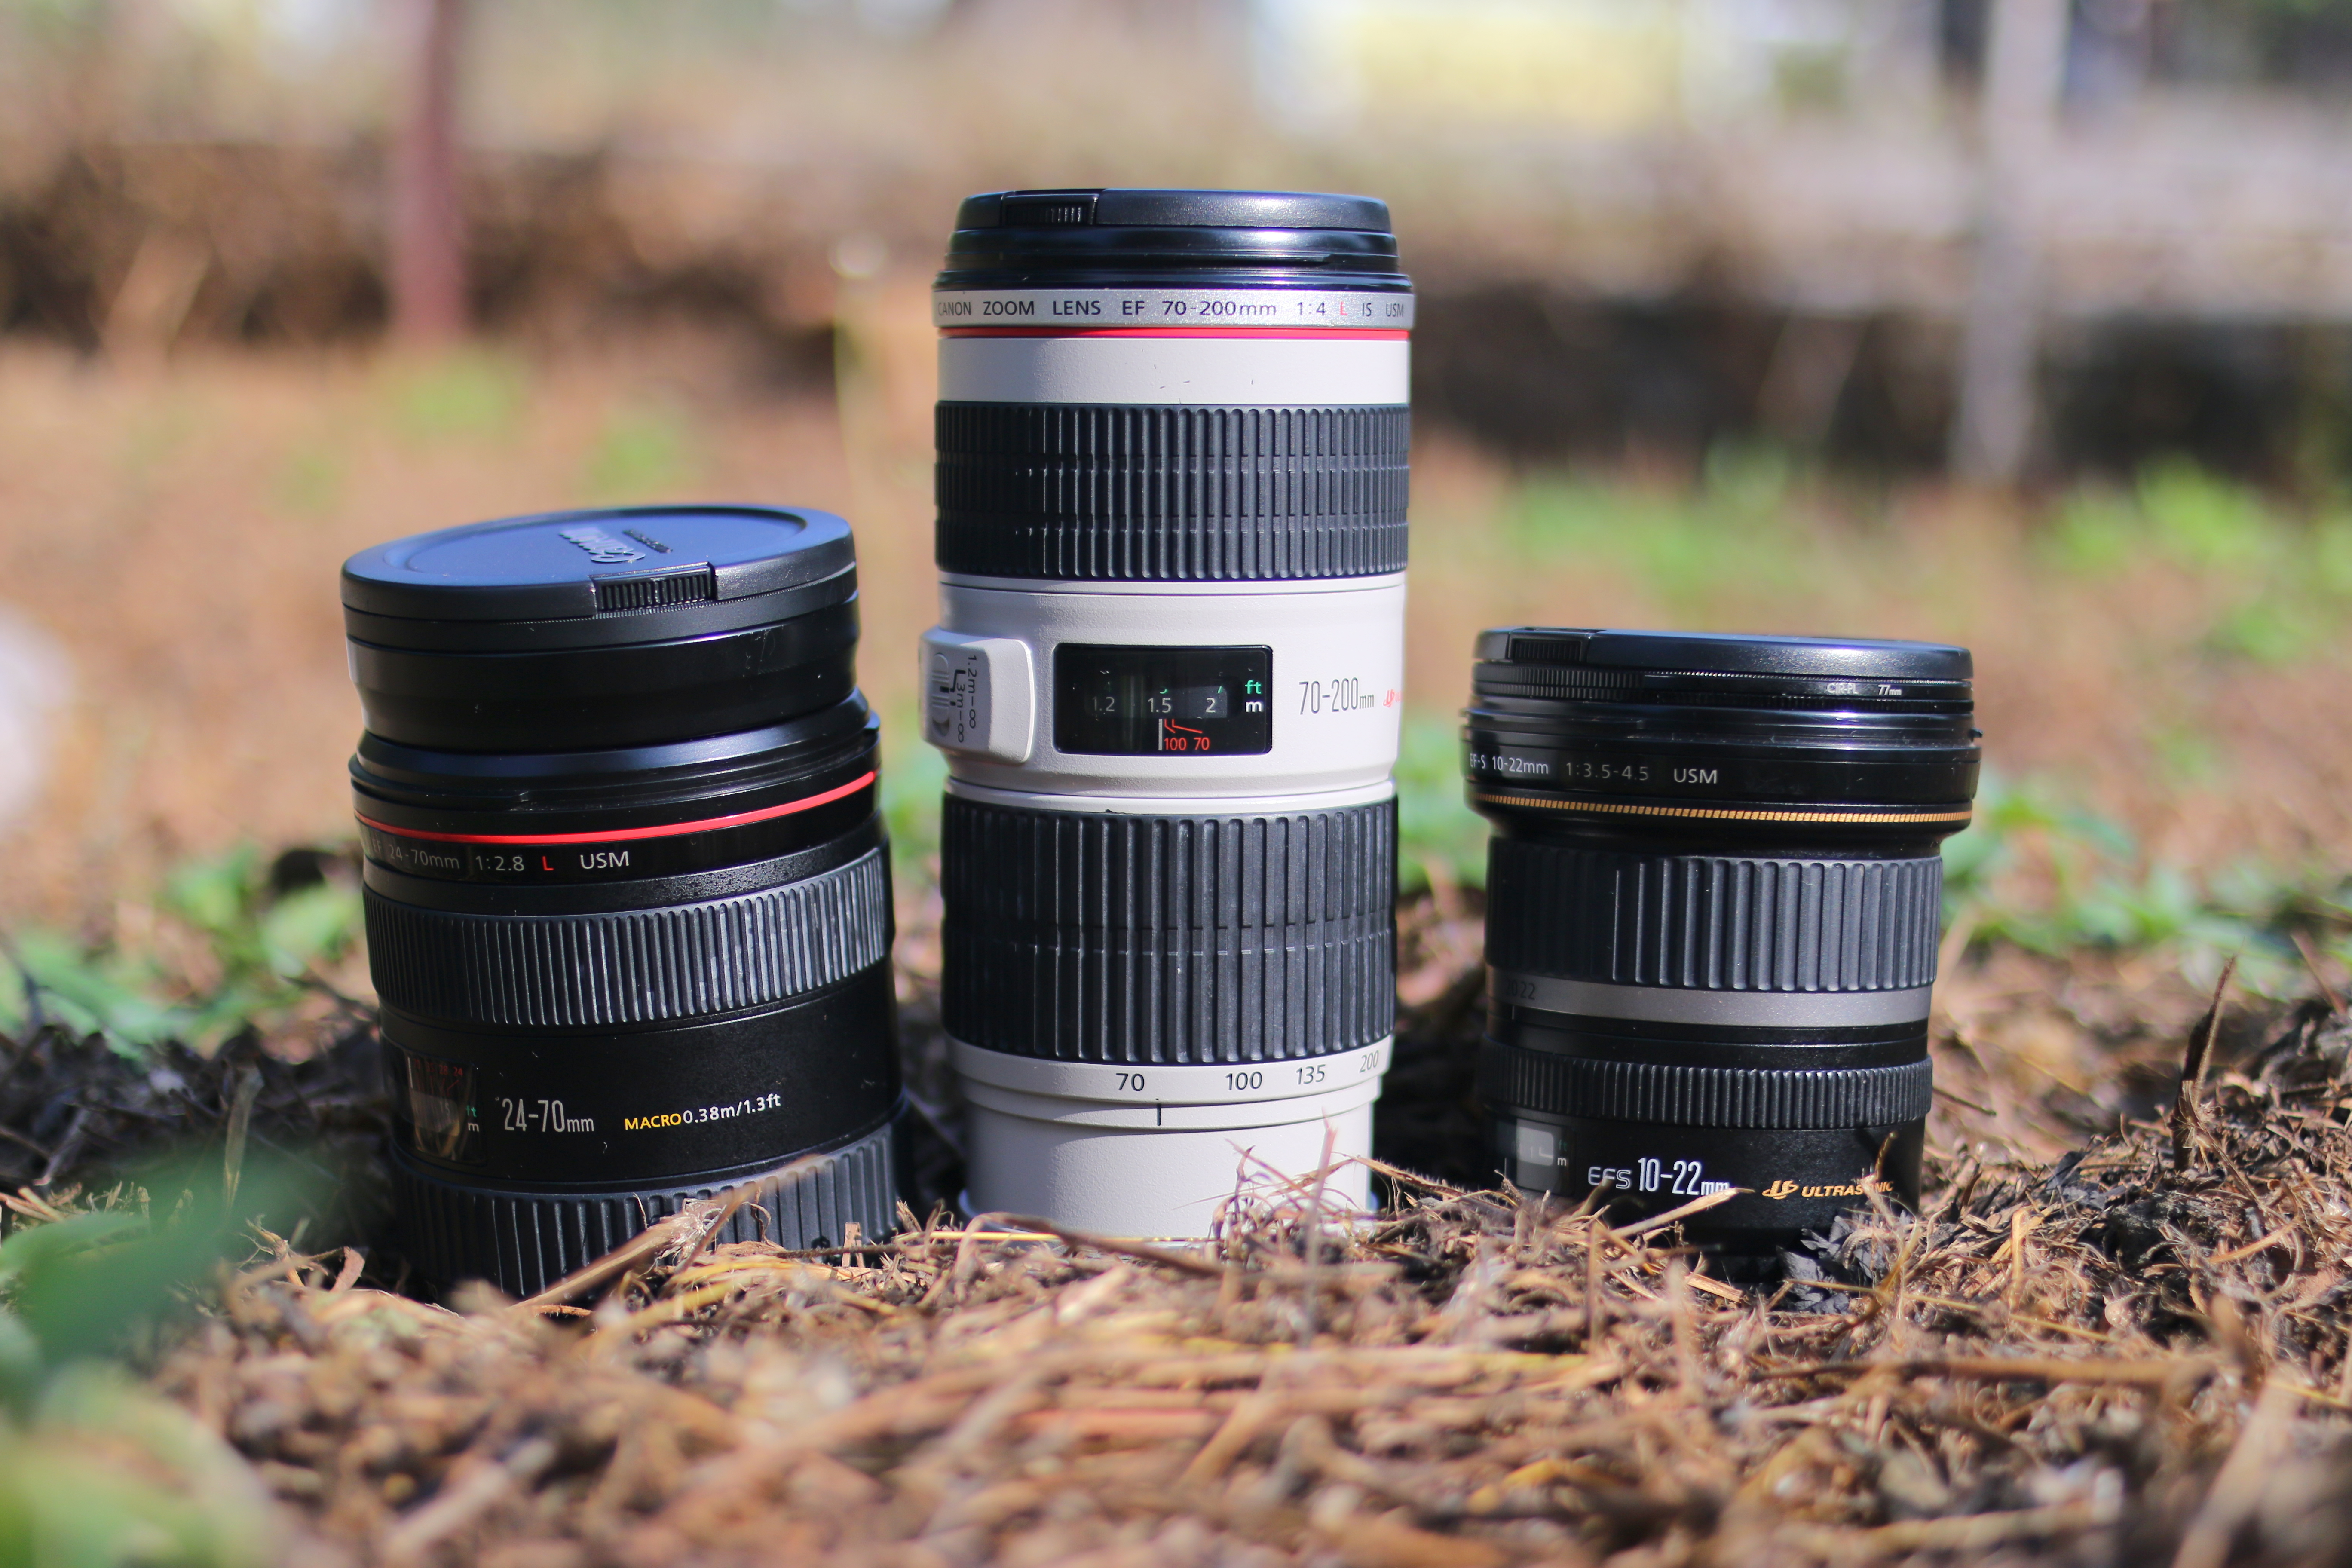 10 facts about lenses you need to know – Ober Photography Tips